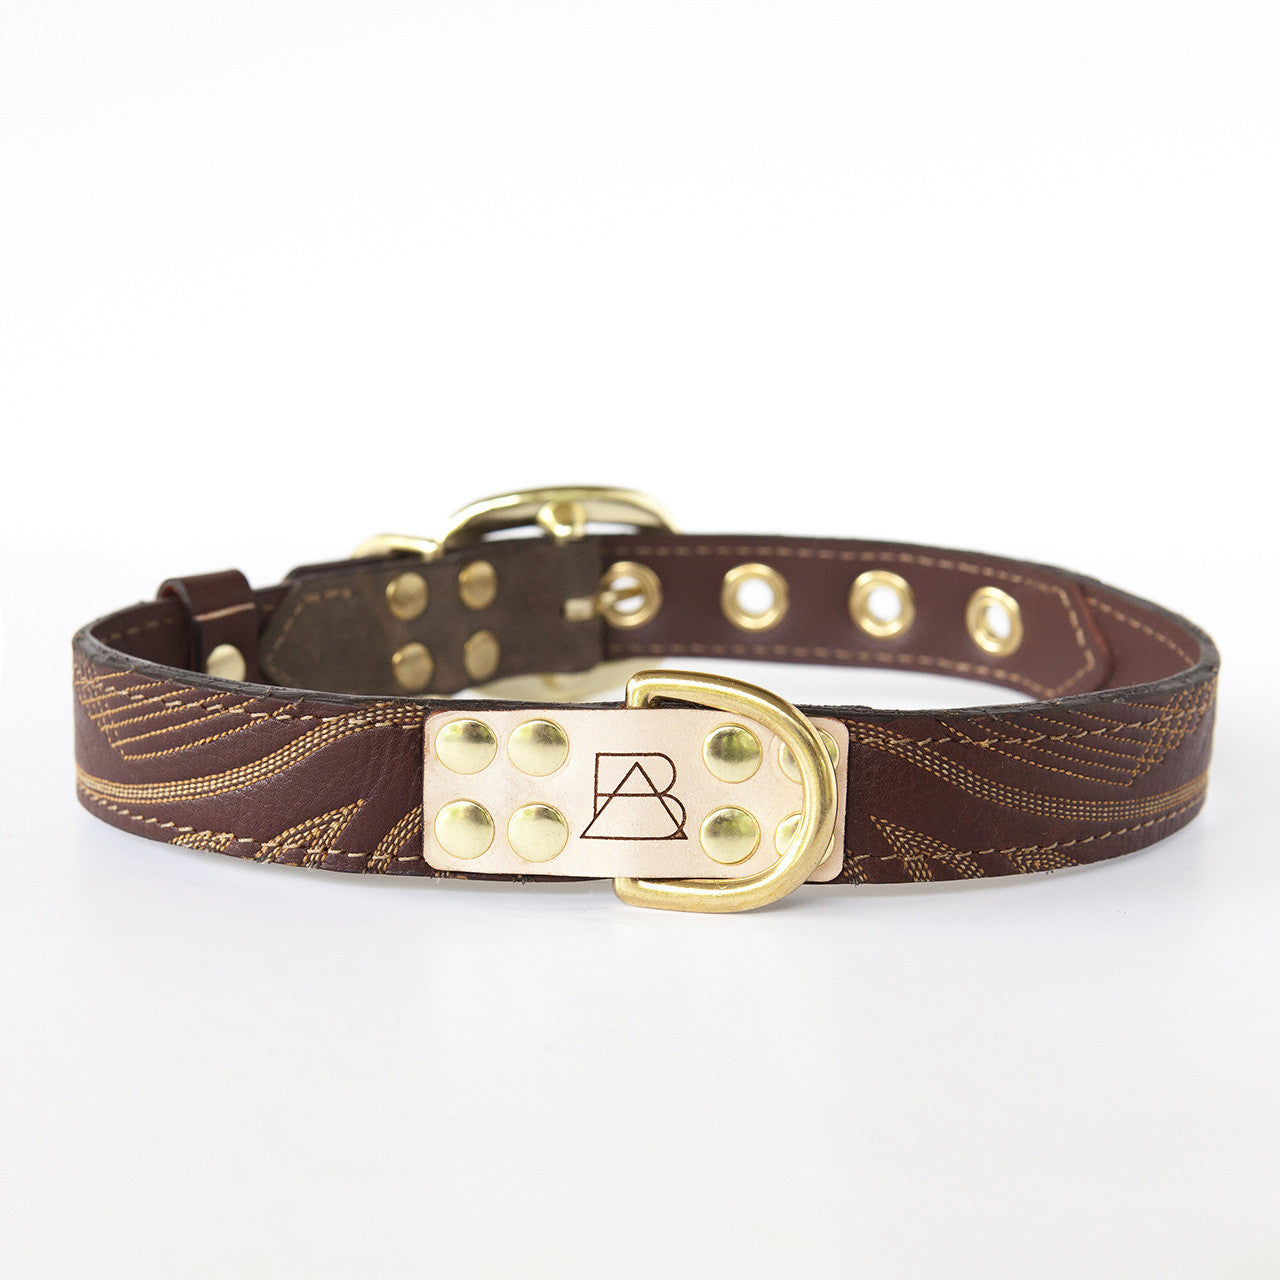 Camo Dog Collar with Brown Leather + Ivory Stitching (front view)